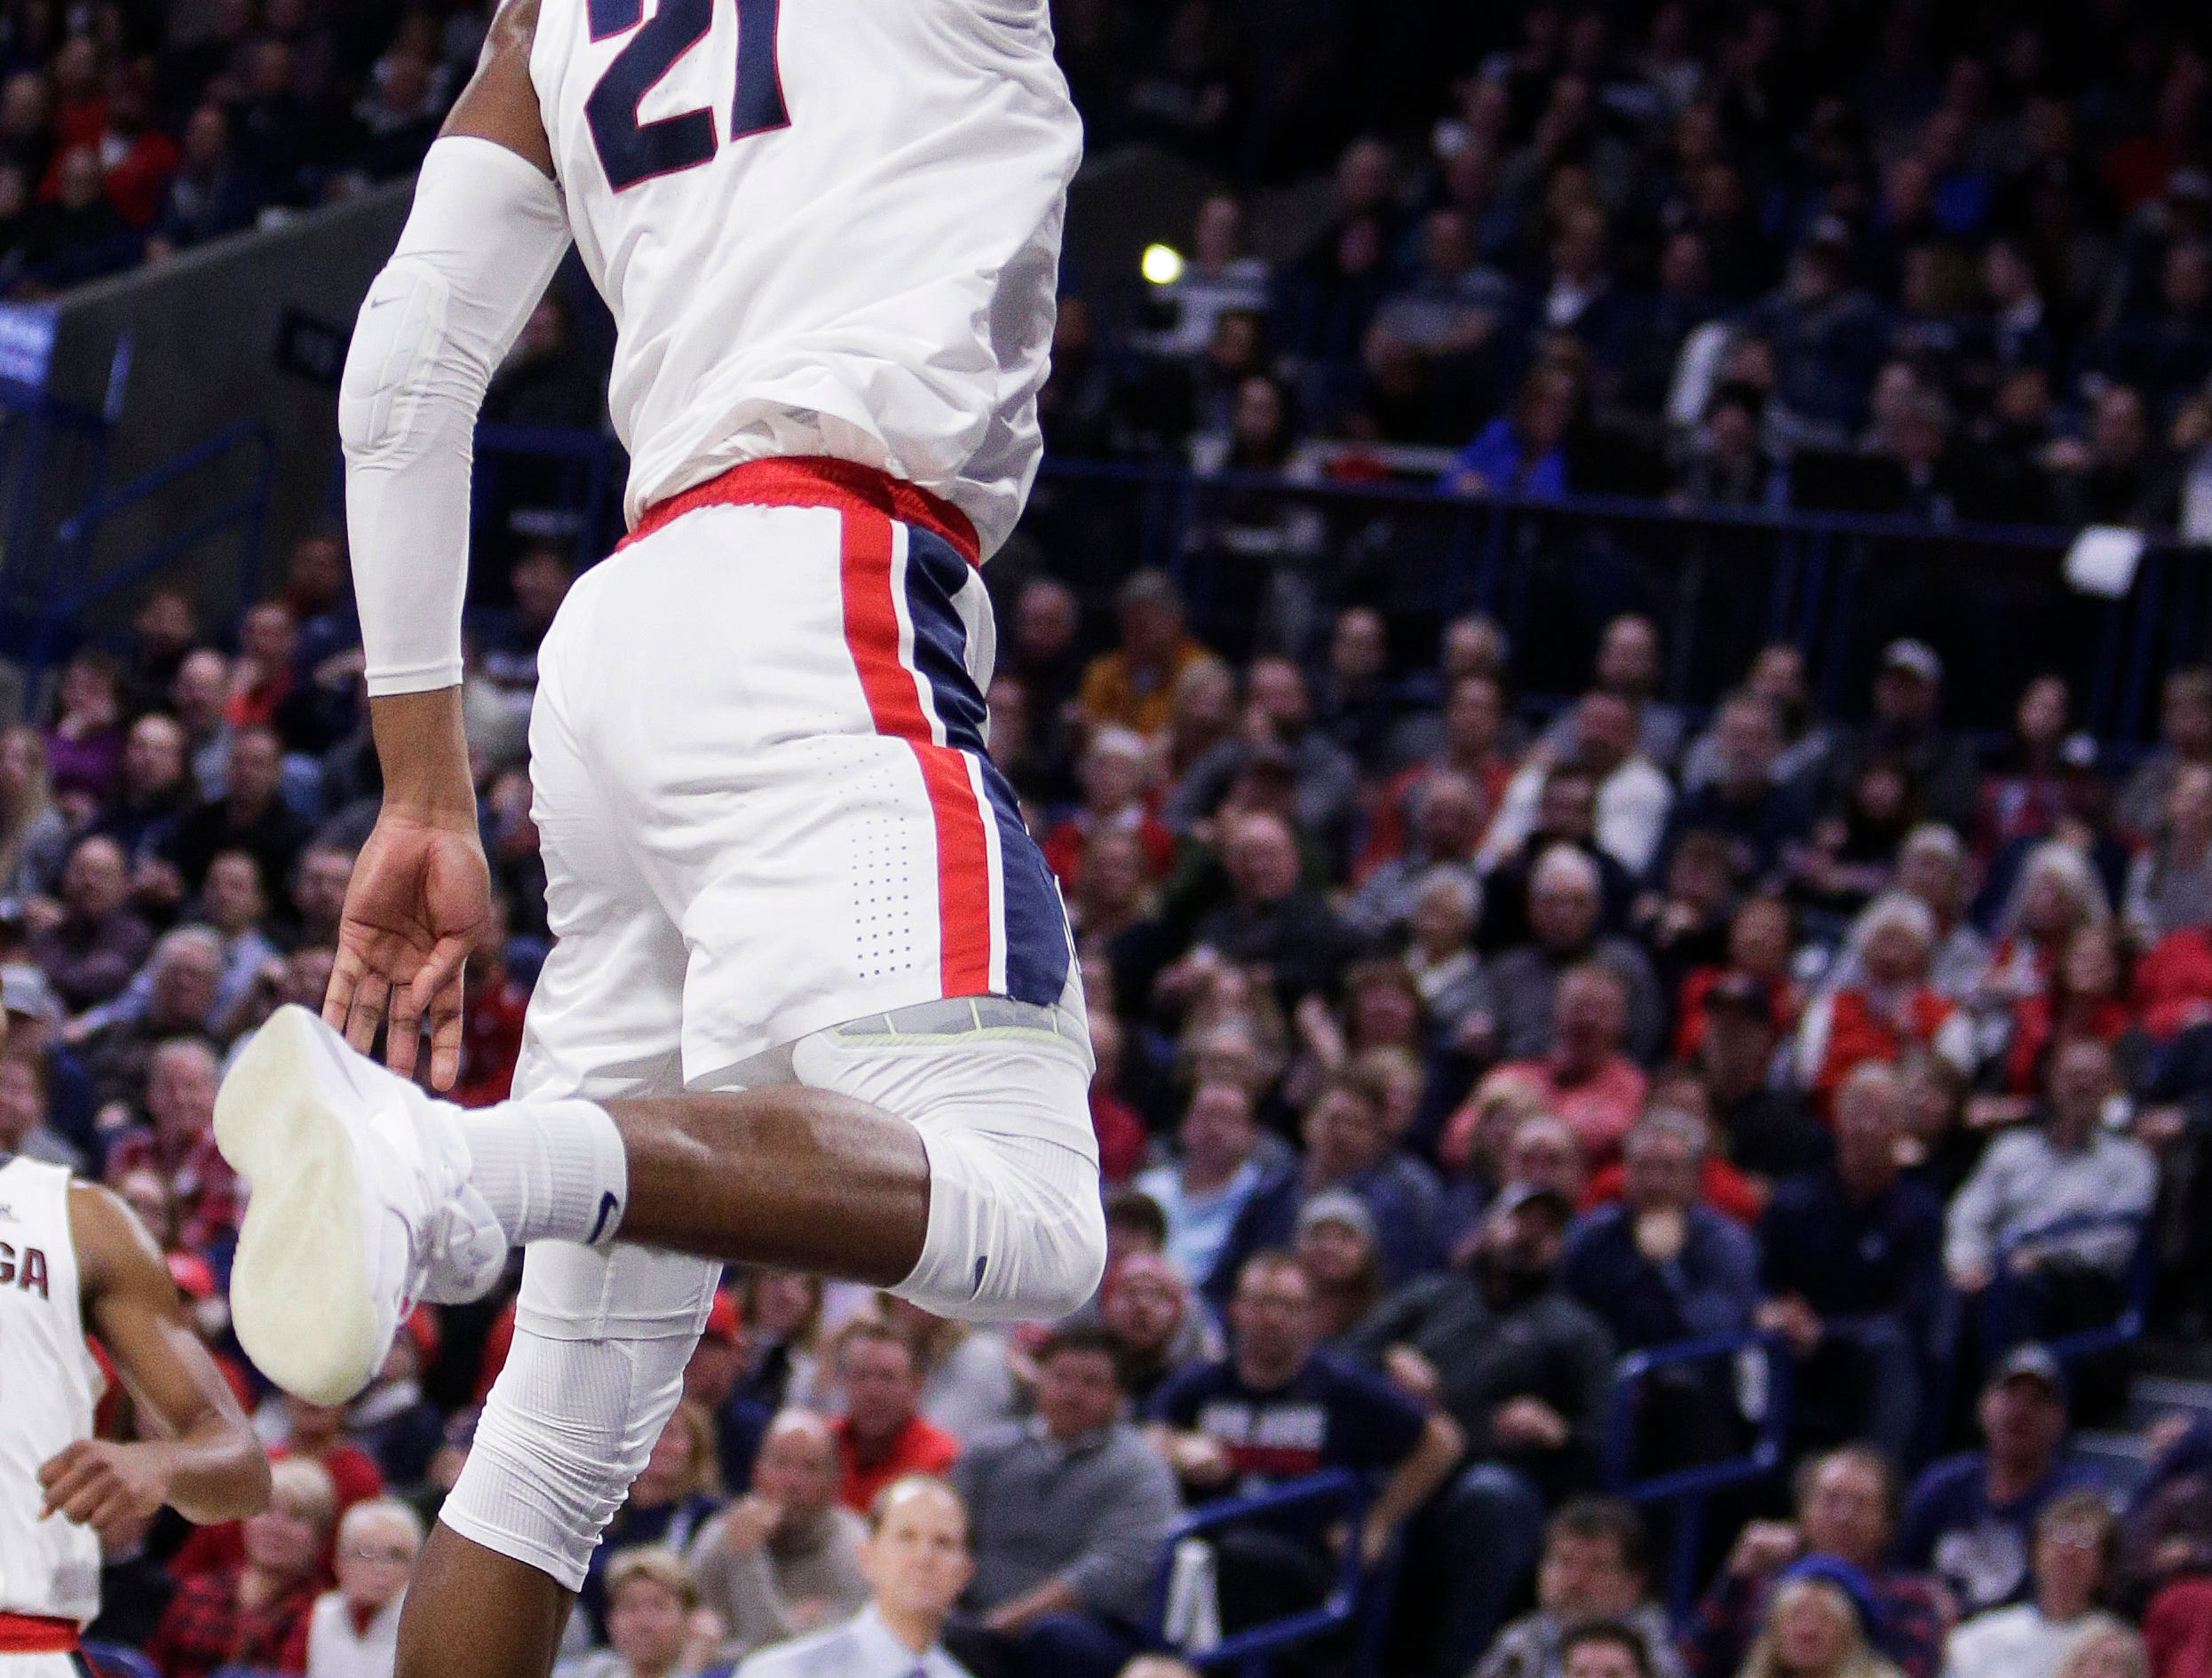 Gonzaga forward Rui Hachimura (21) dunks during the first half of an NCAA college basketball game against Washington in Spokane, Wash., Wednesday, Dec. 5, 2018. (AP Photo/Young Kwak)